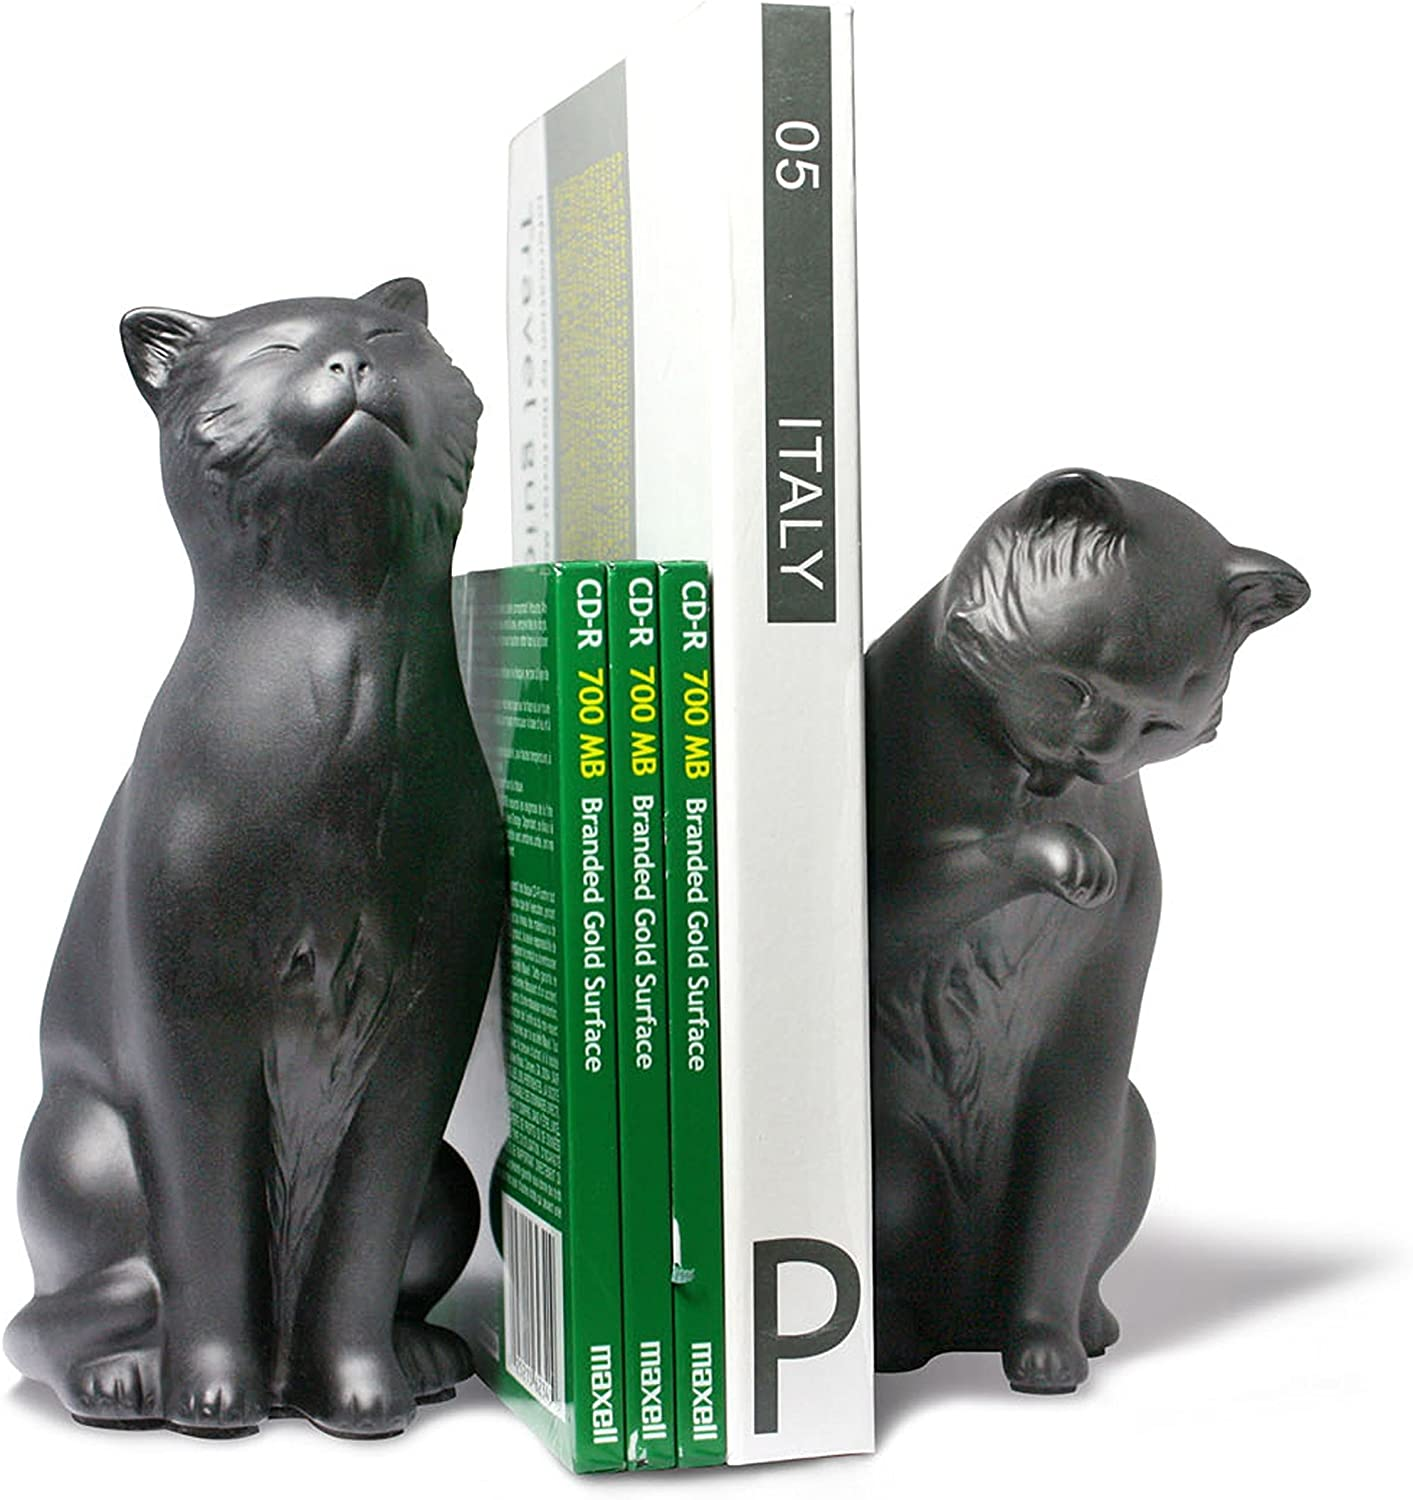 Danya B. NY8022B Feline Shelf Decor - Decorative Cat Bookend Set for Cat Lovers – Black